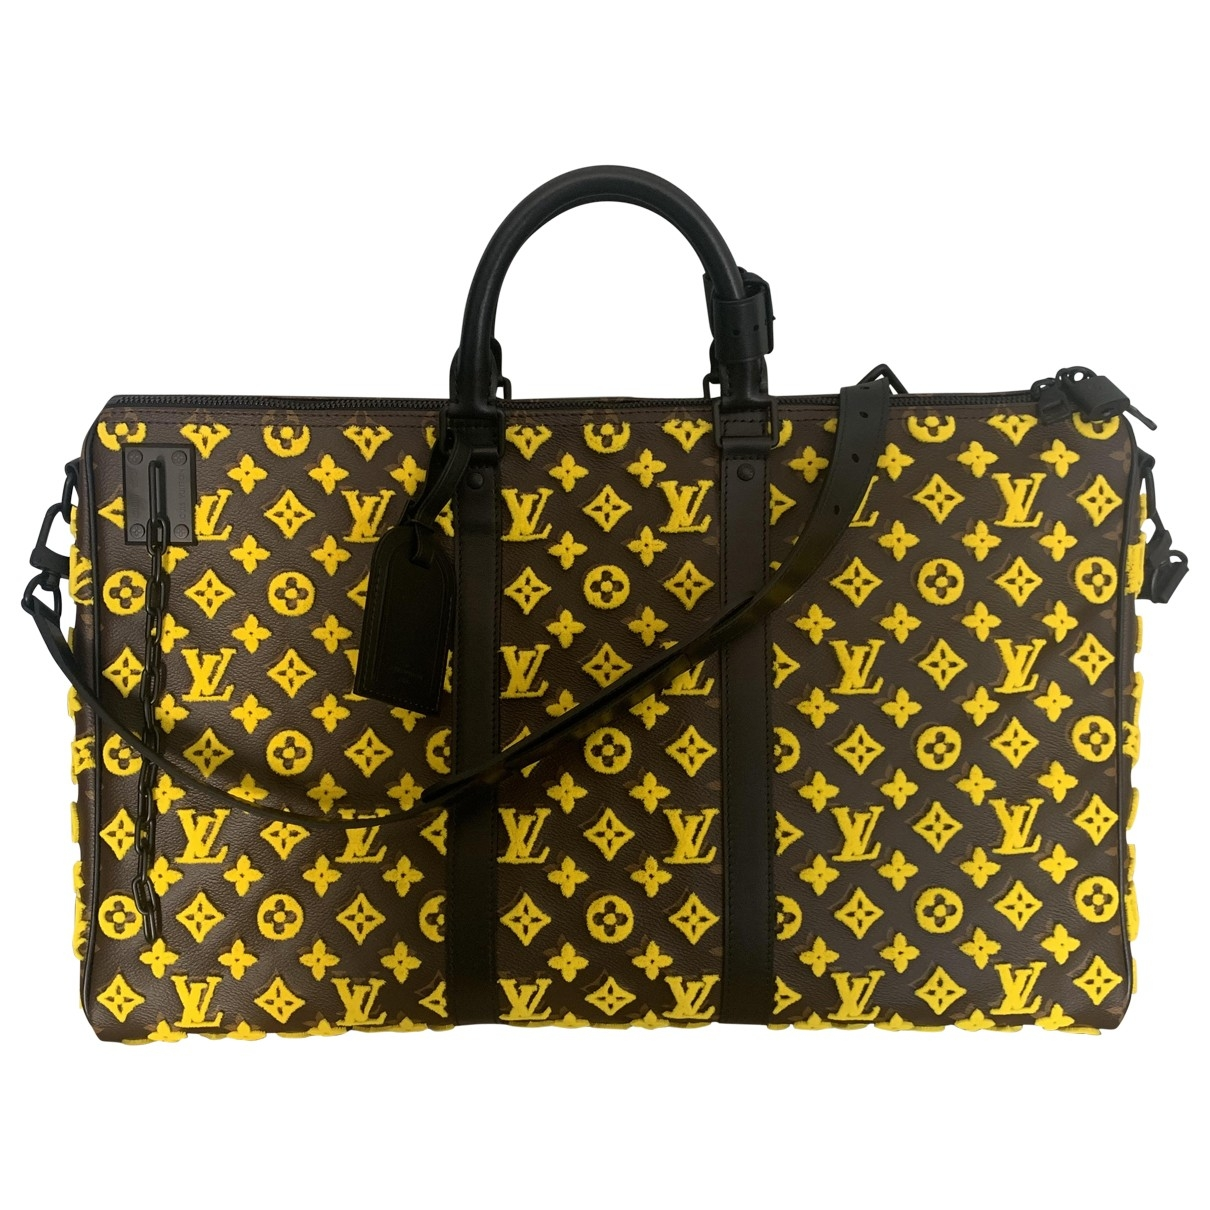 Louis Vuitton Keepall Triangle Yellow Leather bag for Men \N